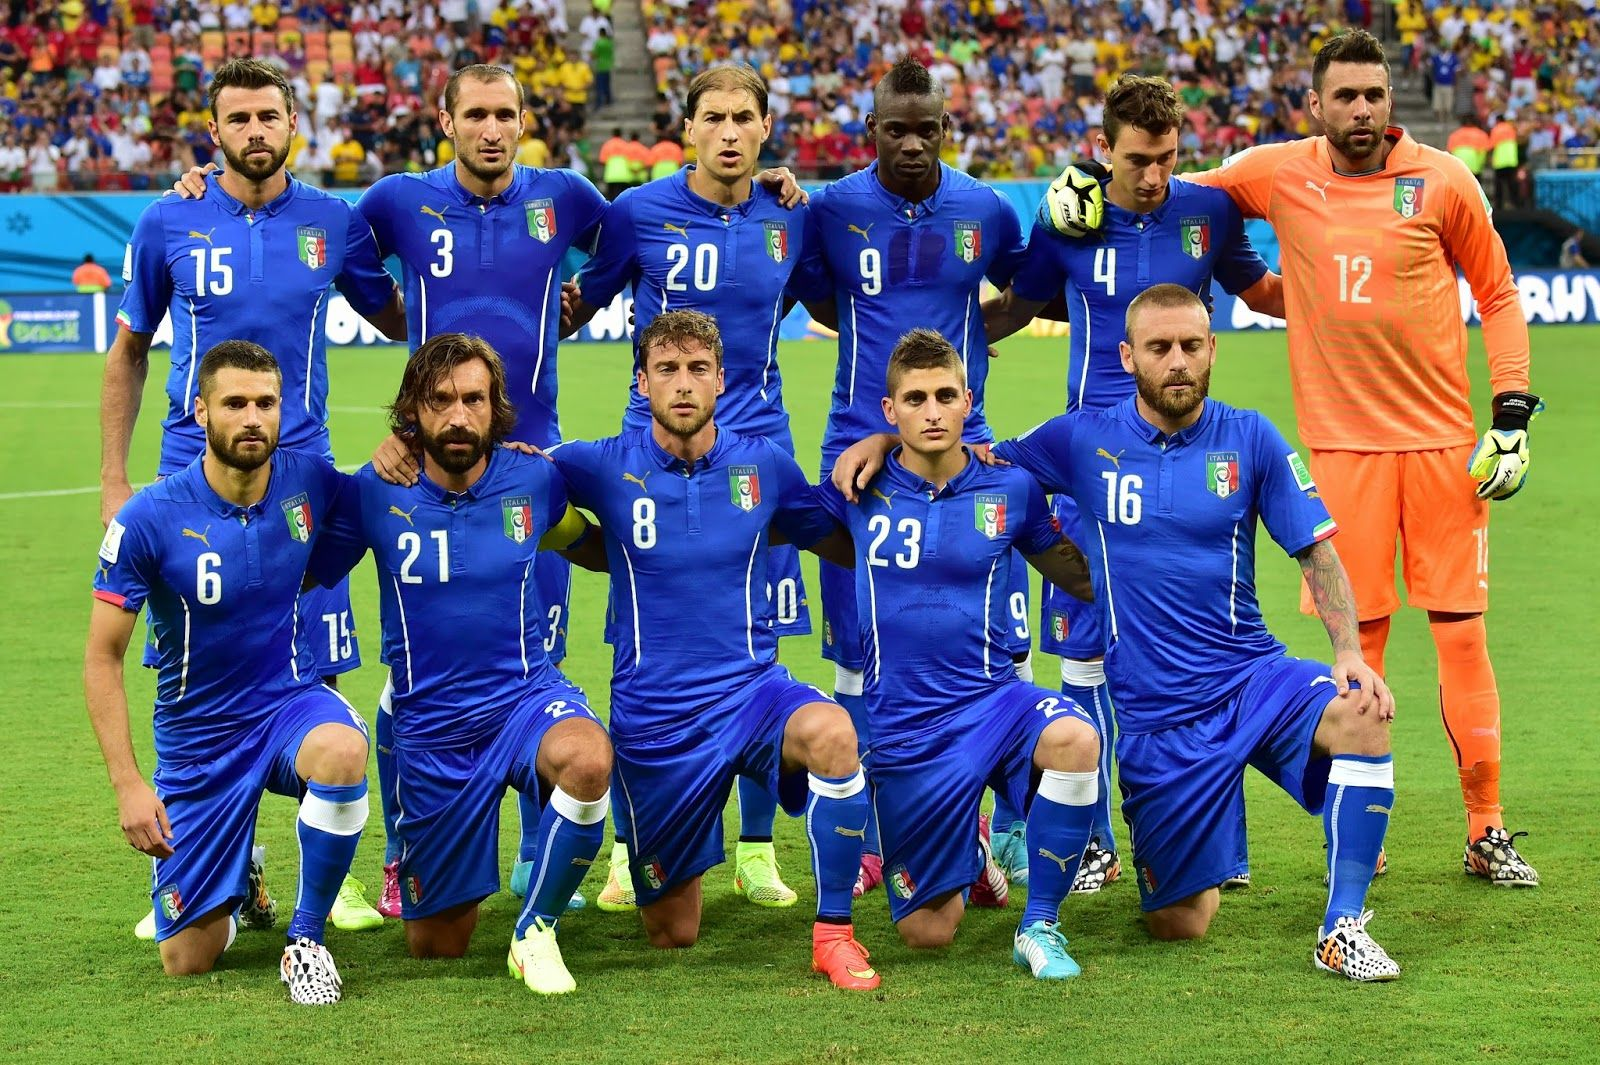 Fifa World Cup 2014 England Vs Italy 8th Match In Pictures Italy National Football Team National Football Teams Fifa World Cup